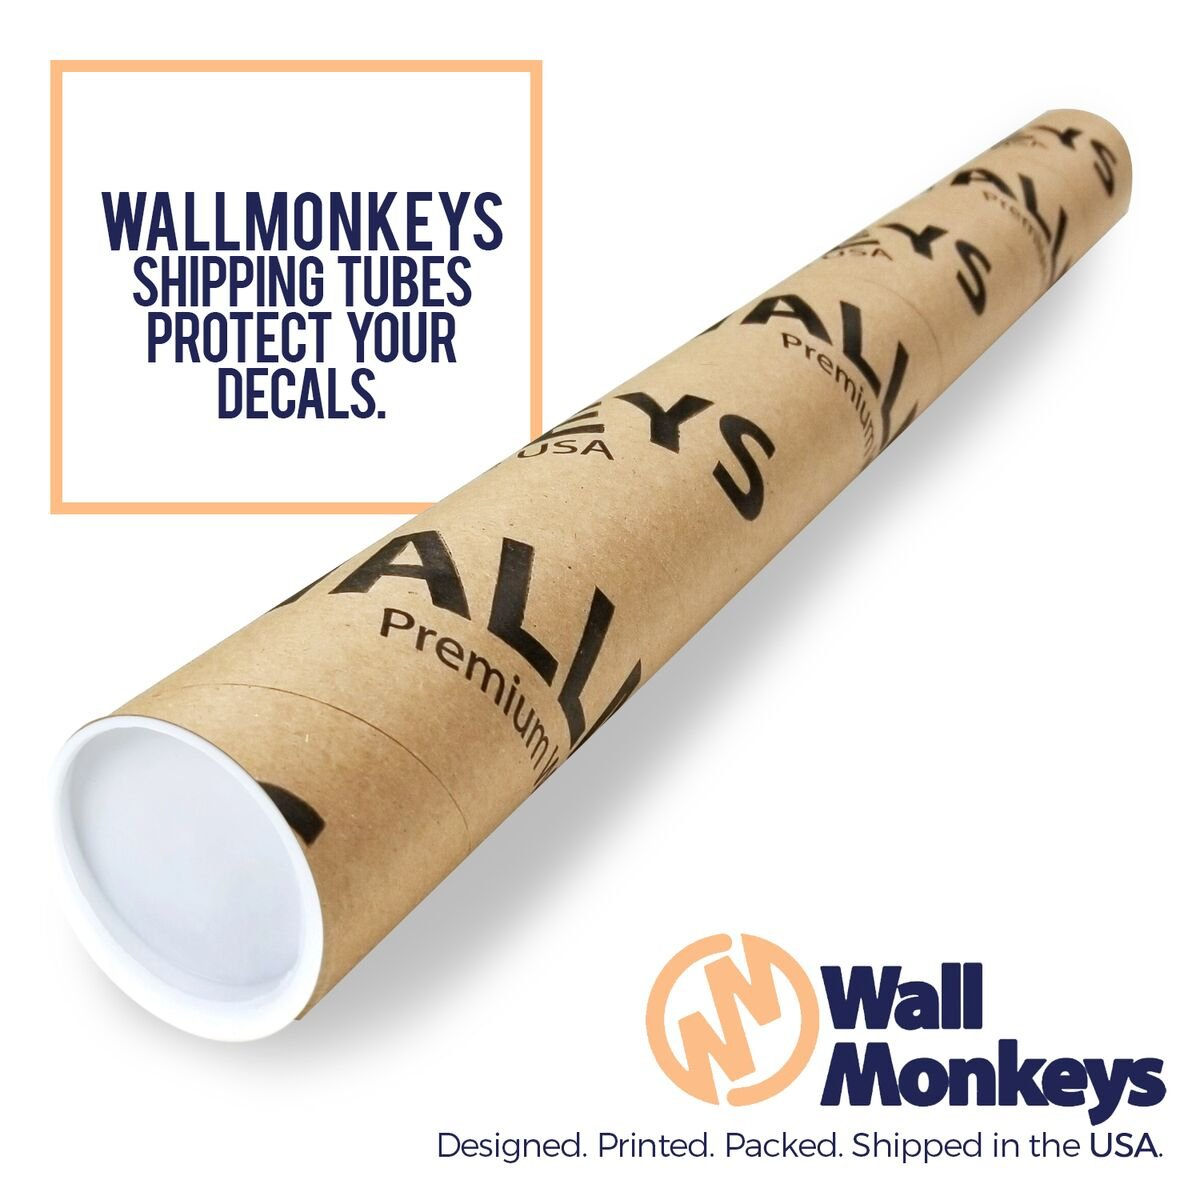 Wallmonkeys WM360429 Bridge with Locks Wall Decal Peel and Stick Graphic (18 in W x 12 in H) by Wallmonkeys (Image #3)